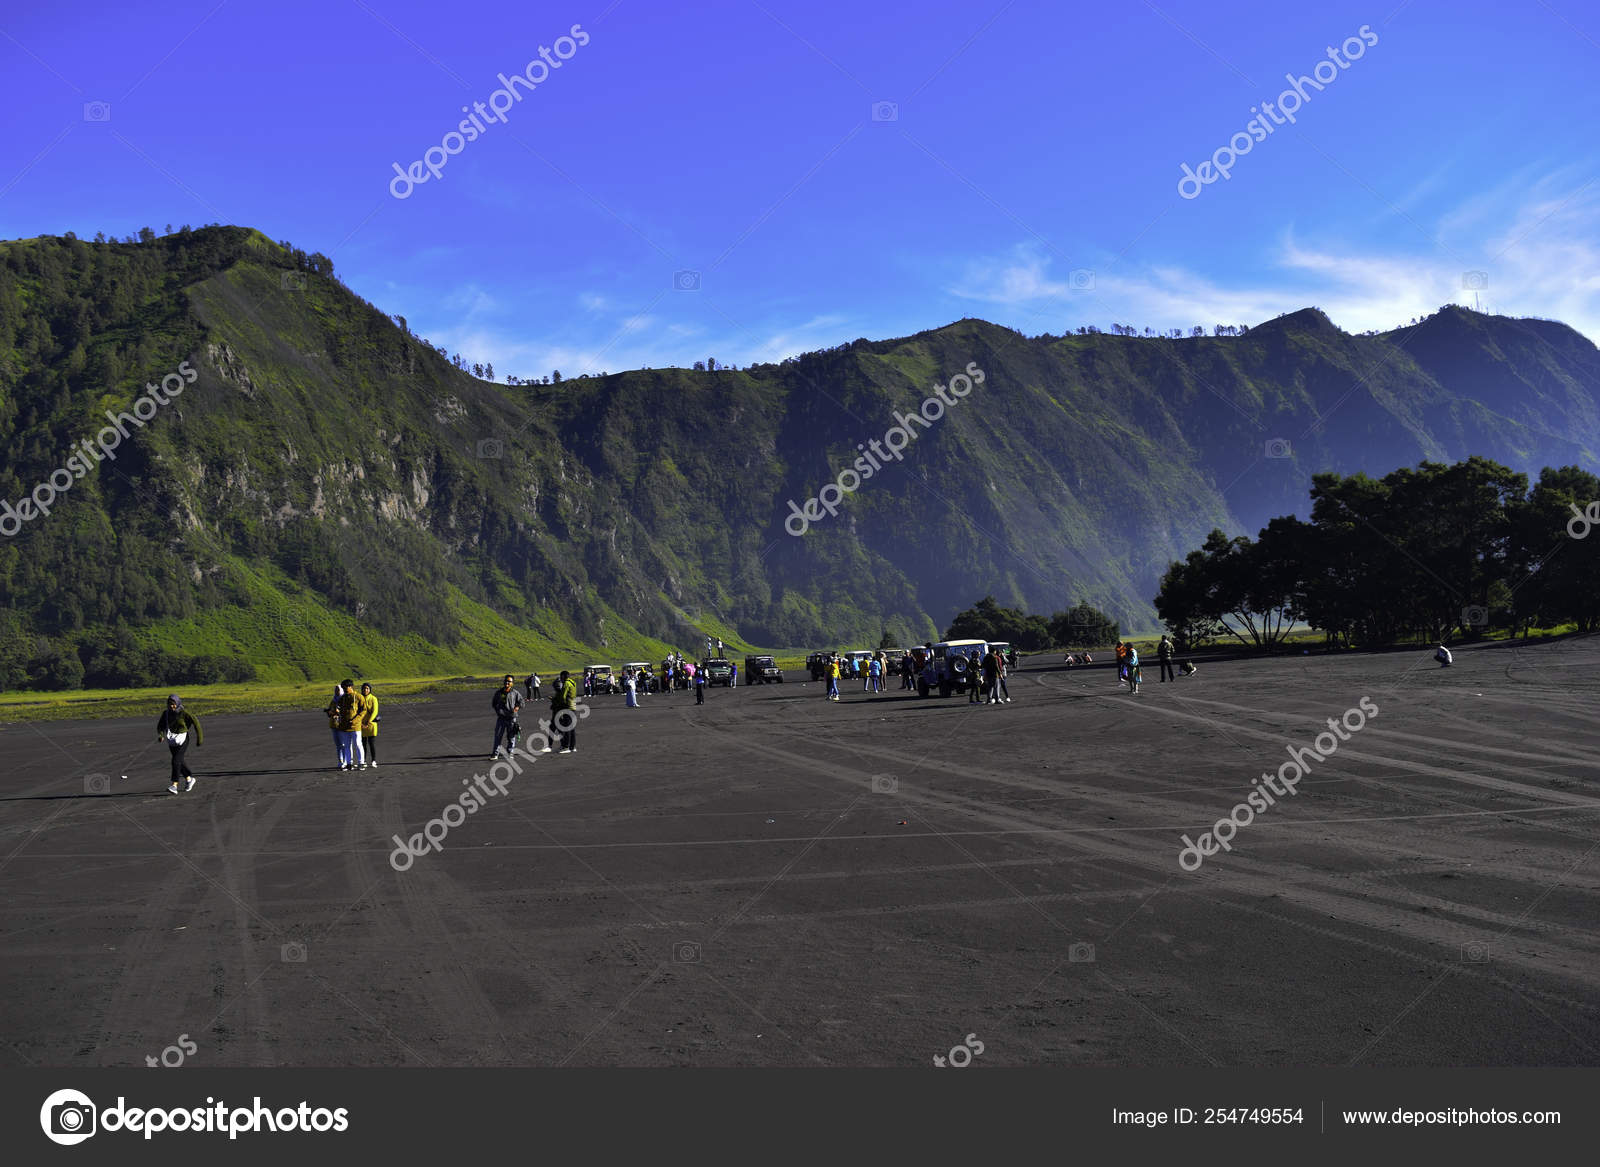 Malang East Java Indonesia April 2 2019 Unrecognized People Landscape Agricultural Field The Summer Season The Car Tracks On The Ground With A Dramatic Cloudy Sky Stock Editorial Photo C Olanstock 254749554